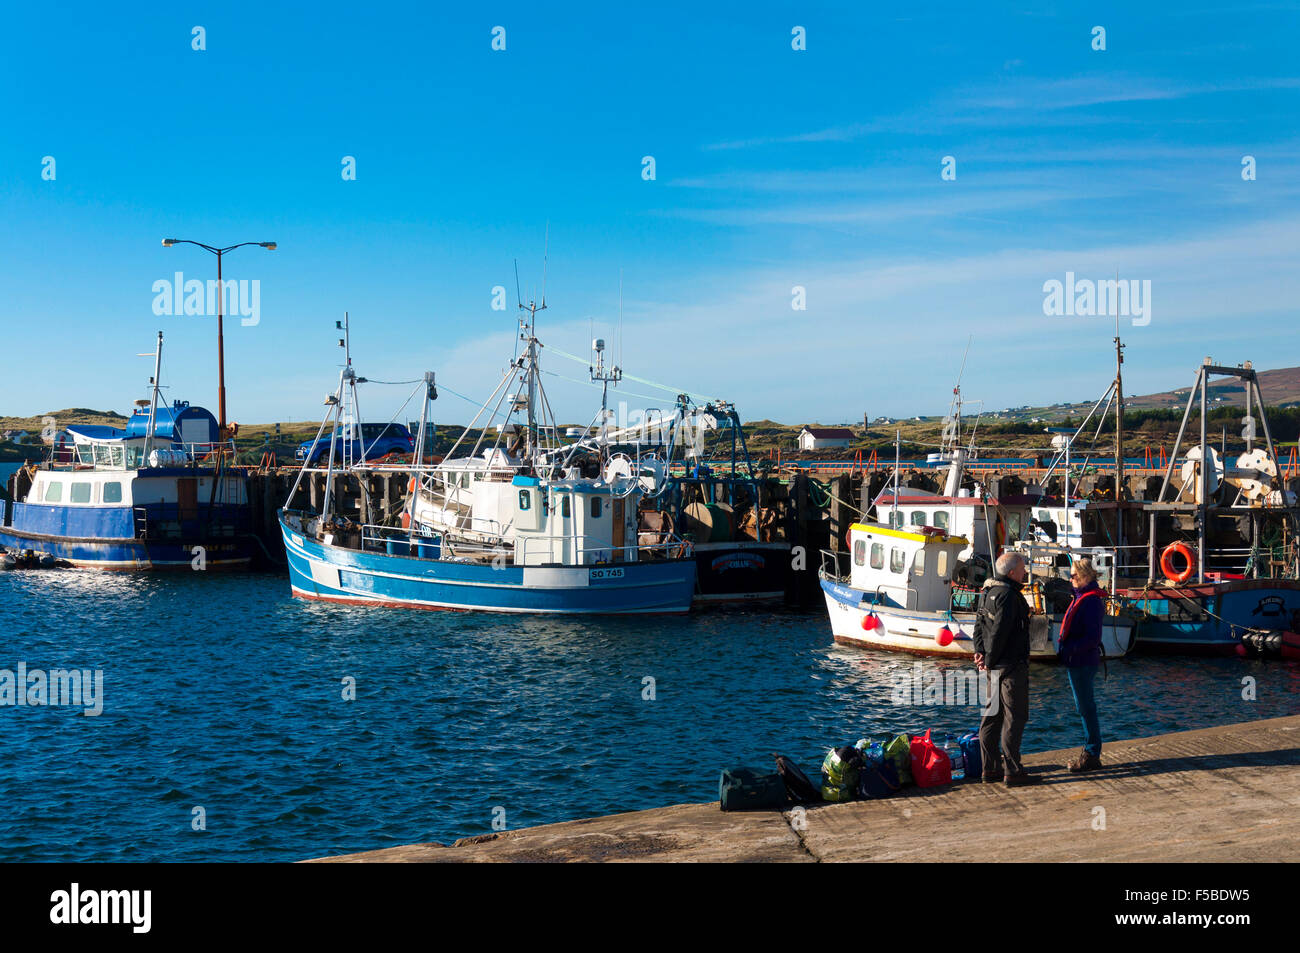 Burtonport County Donegal Ireland Weather 1st November 2015 A Stock Photo Alamy